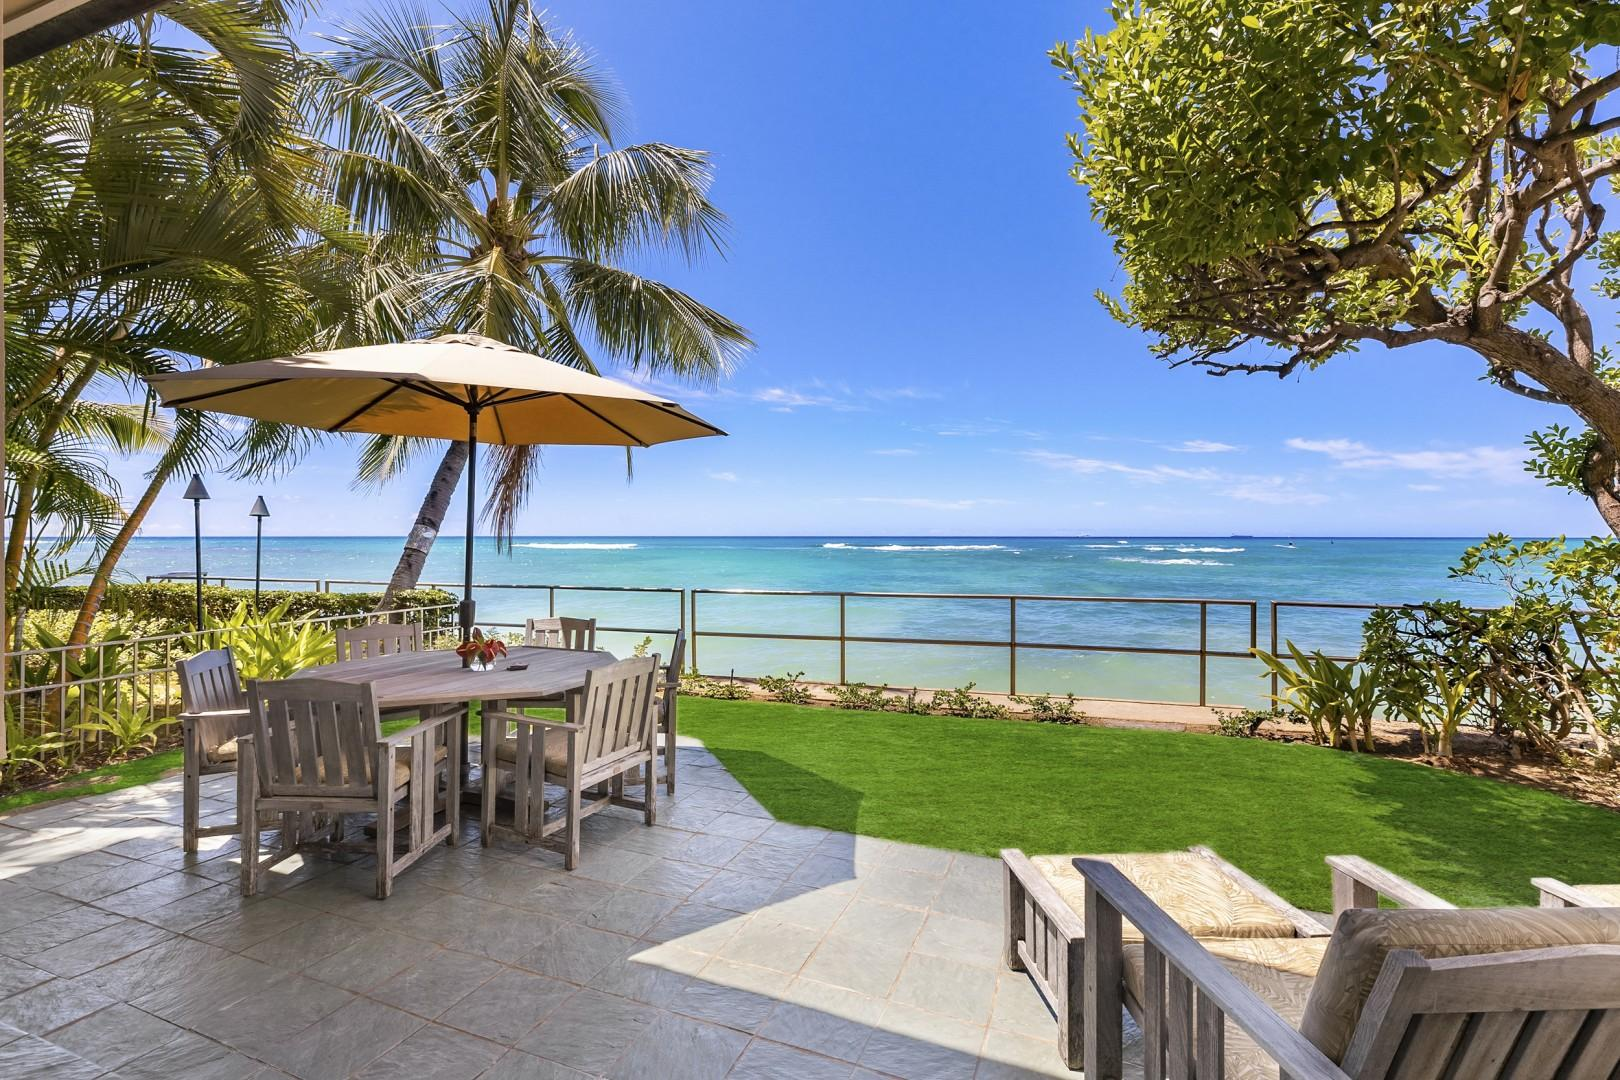 Oceanside lanai with lounge chairs and outdoor seating with umbrella.